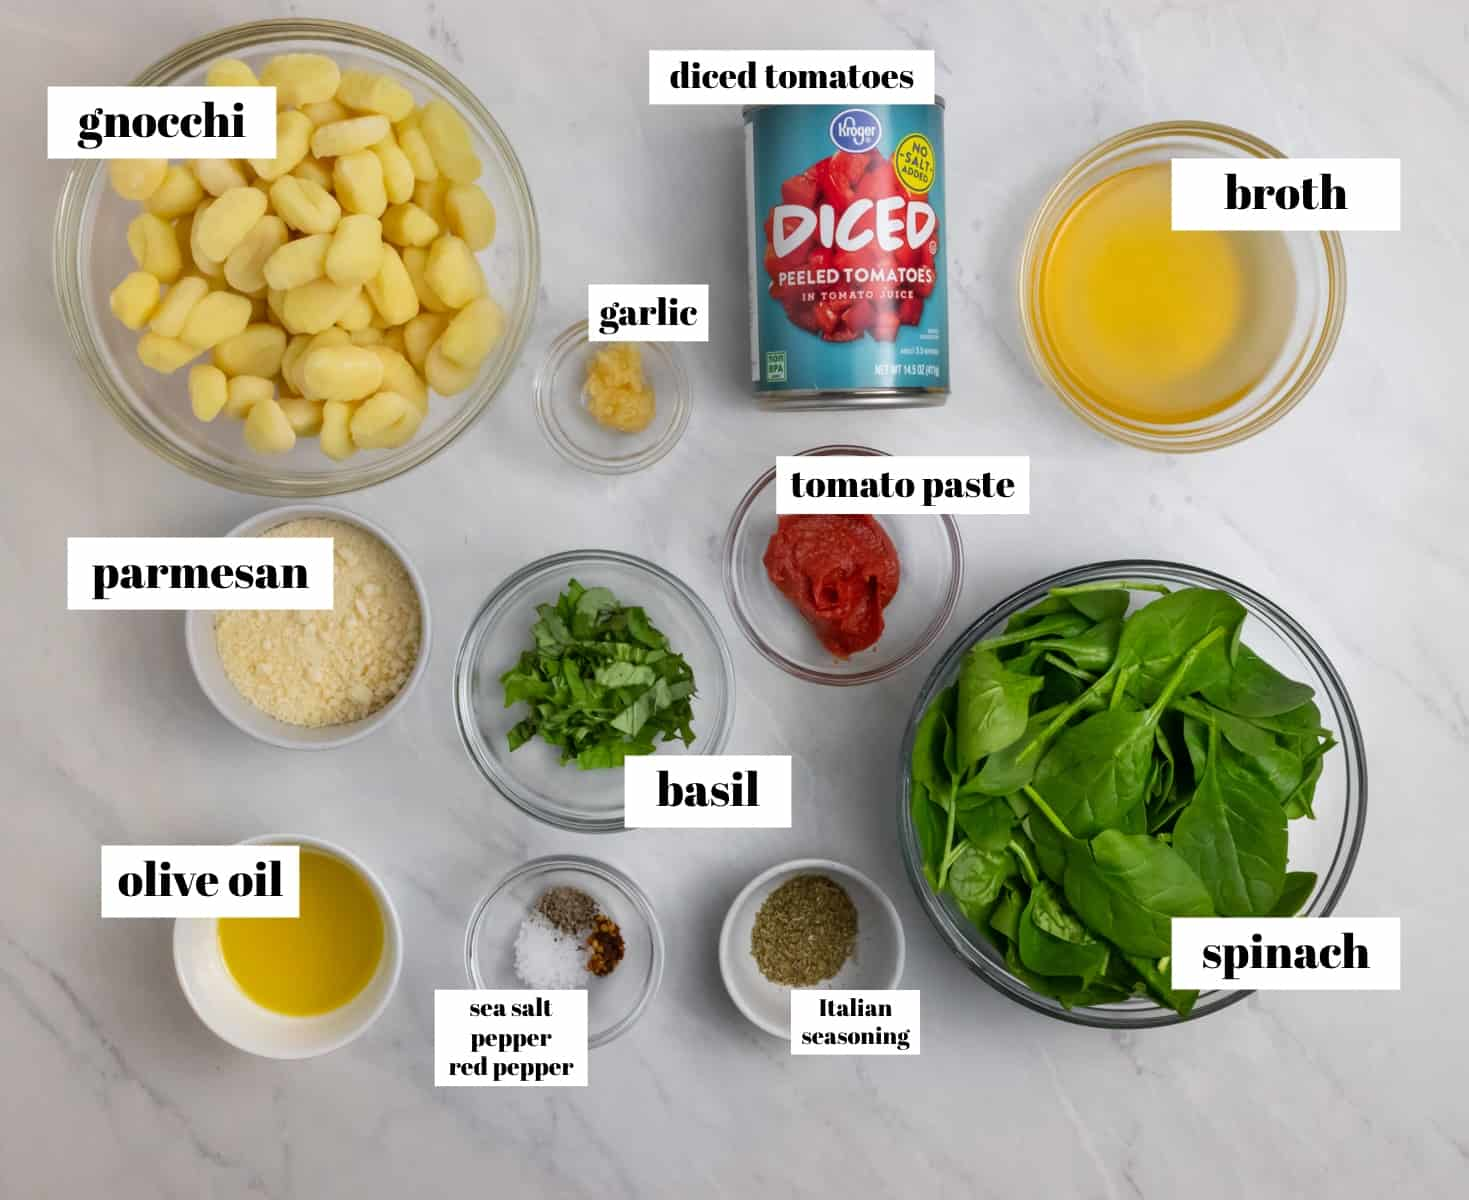 Spinach, broth, parmesan and ingredients labeled on counter.